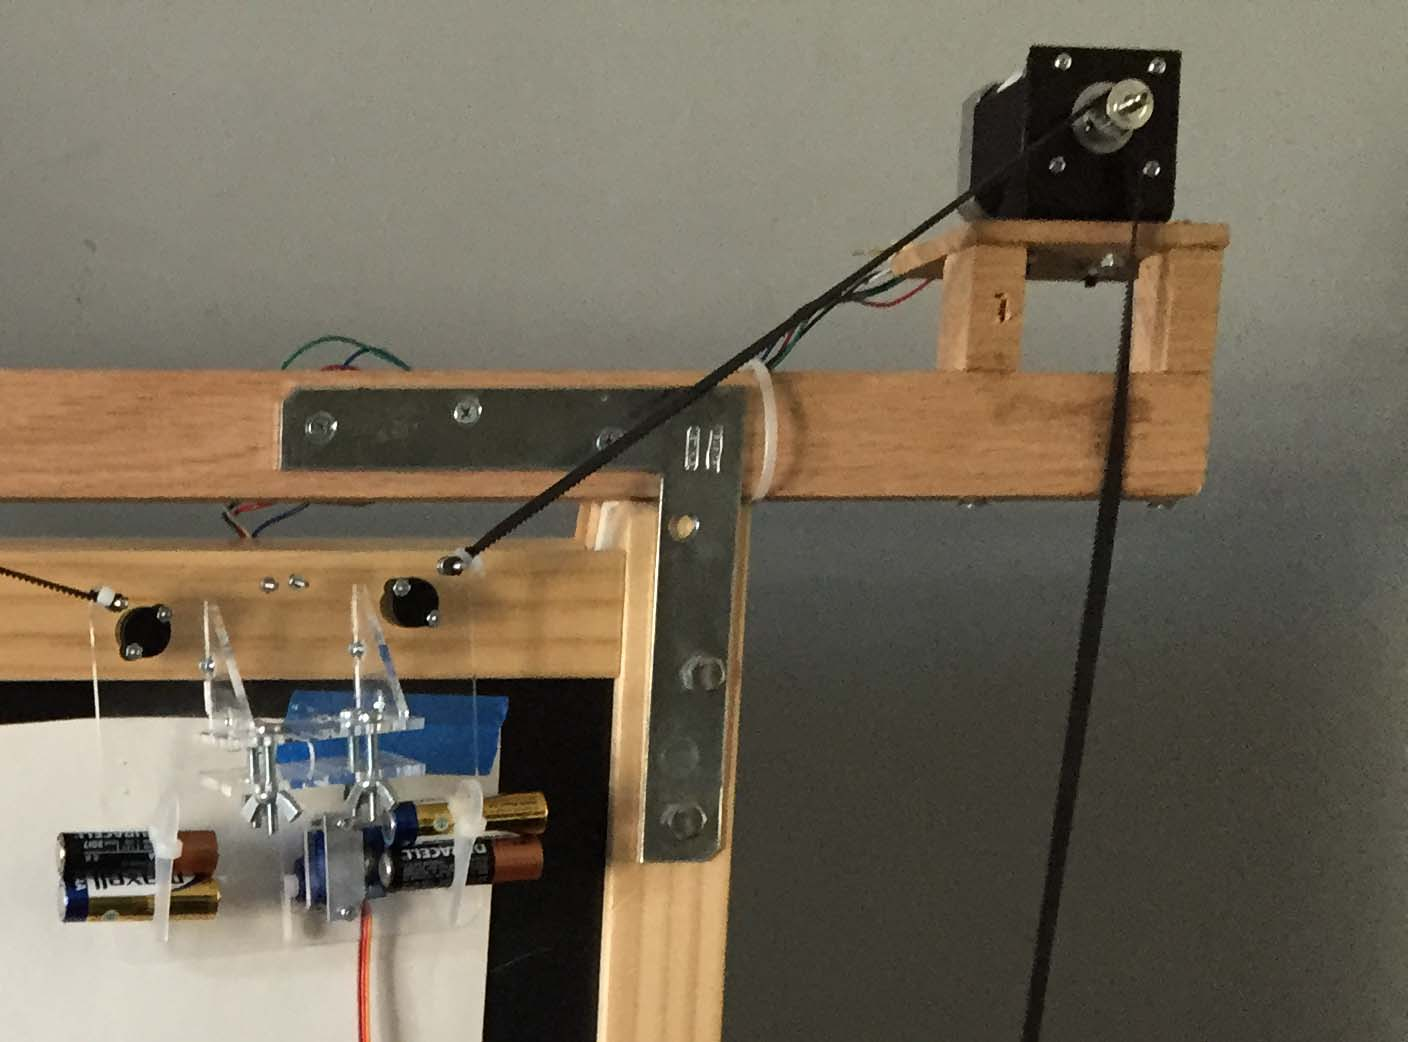 Yawp Yet Another Wall Plotter Geek Mom Projects Circuit Board Picture Frames Clock These Are Awesome For A Geeky Metal Brackets And Wooden Planks Attached The Stepper Motors To Easel Frame